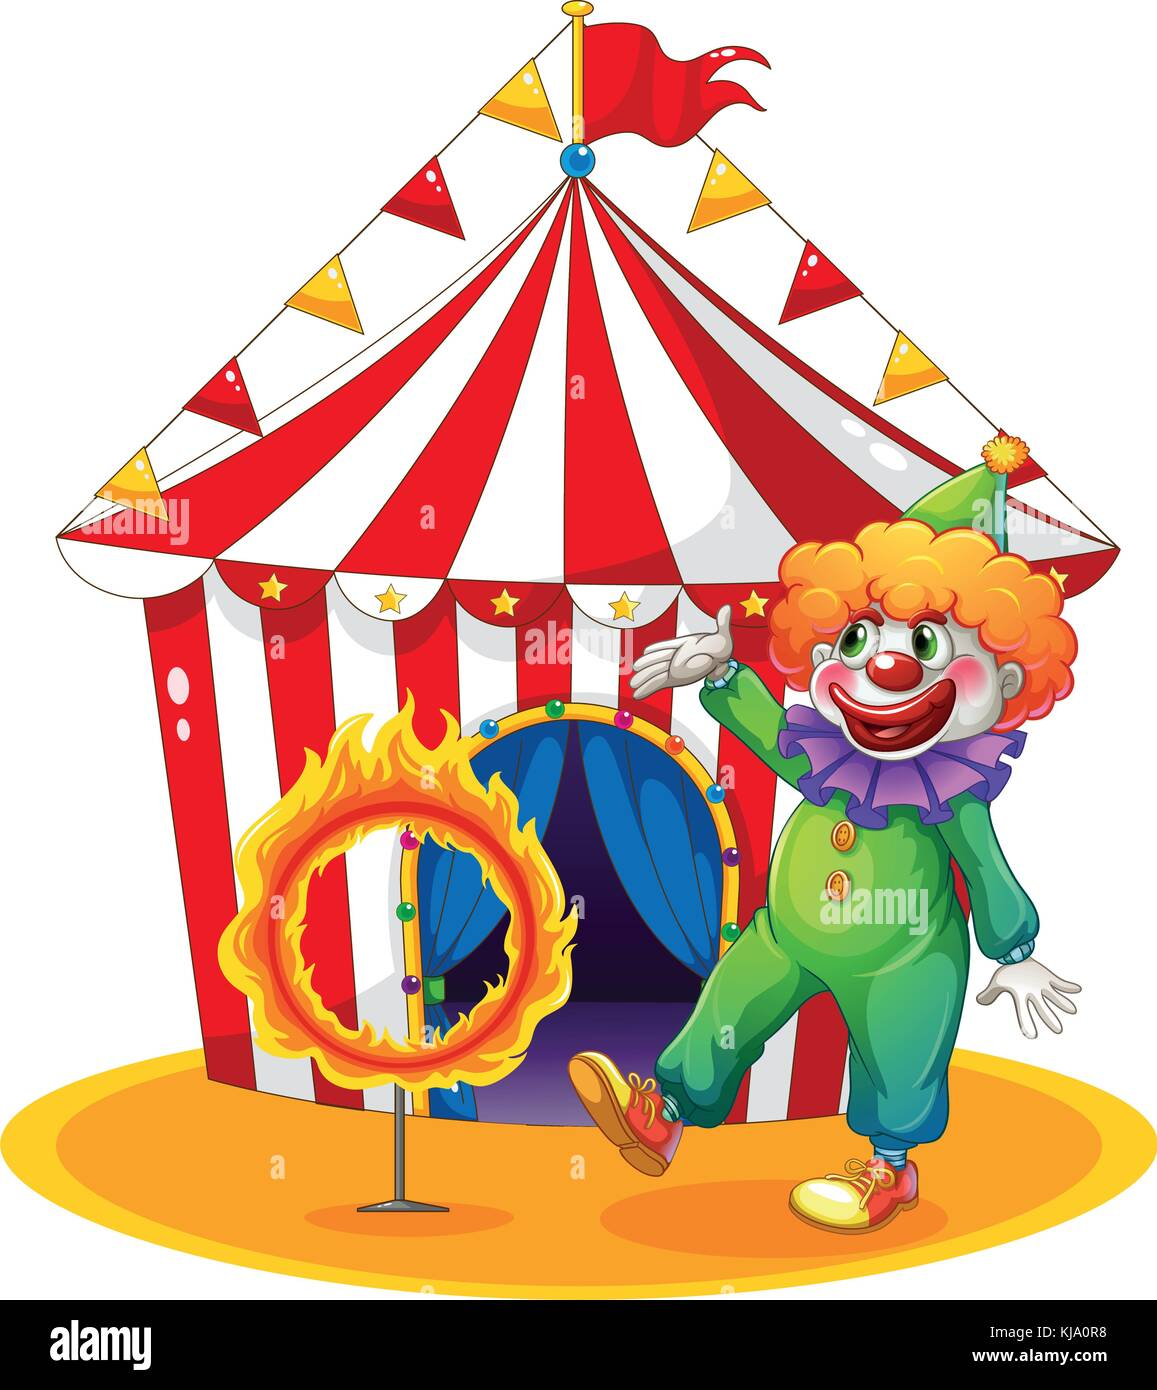 Illustration of a tent at the back of the clown and the ring of fire on a white background - Stock Image